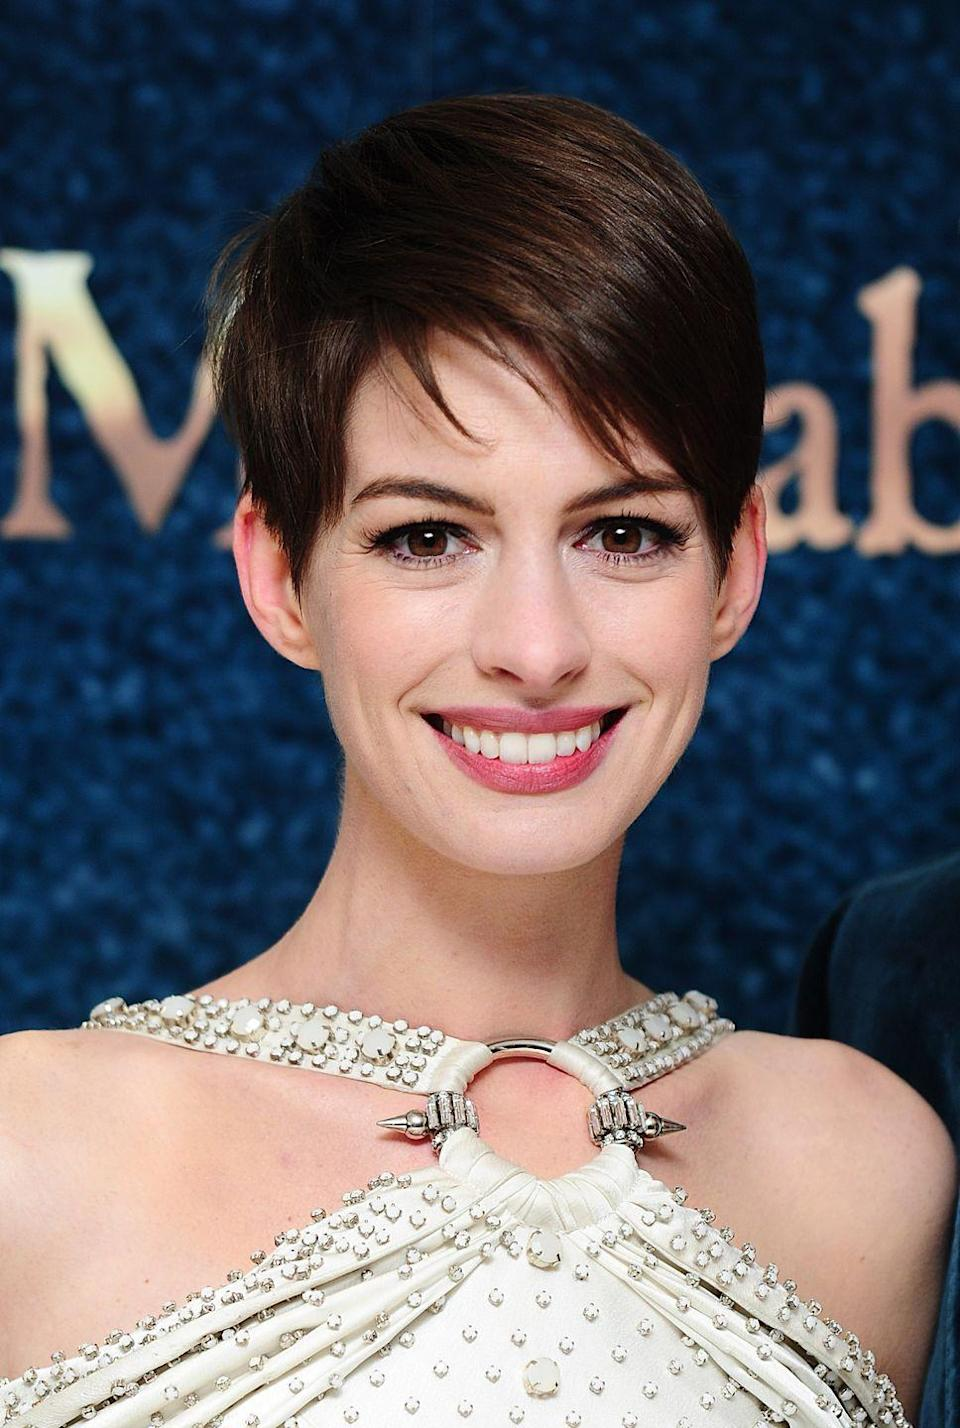 <p>Yes, that's Anne Hathaway in a pixie cut. The actress shaved her head for her role in <em>Les Misérables </em>and spent awards season (she won the Academy Award for Best Actress that year) sporting the shorter look.</p>